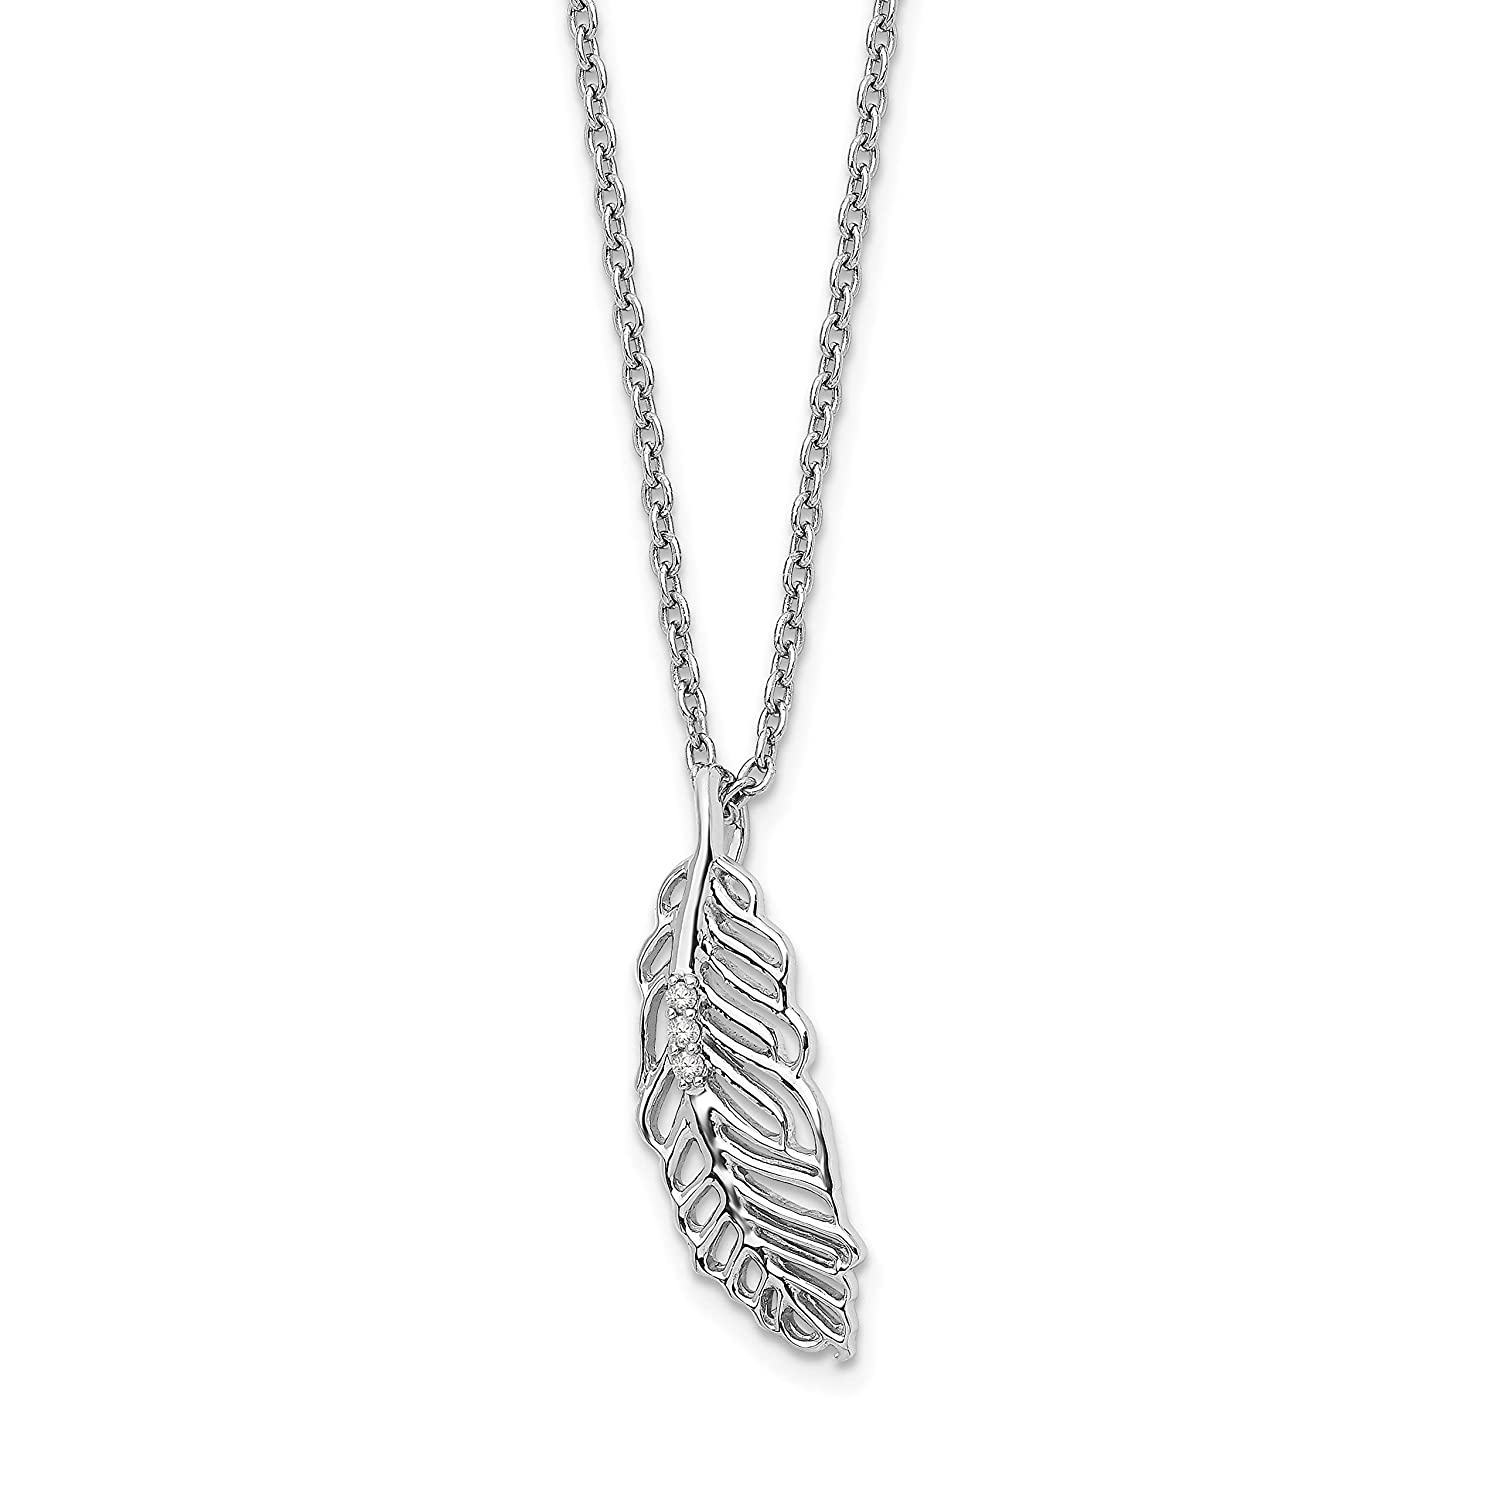 Sterling Silver White Ice Diamond Feather 18 Inch 2 Inch Ext Necklace18 Inches 0.02 cttw, I1-I3 Clarity, I-J Color